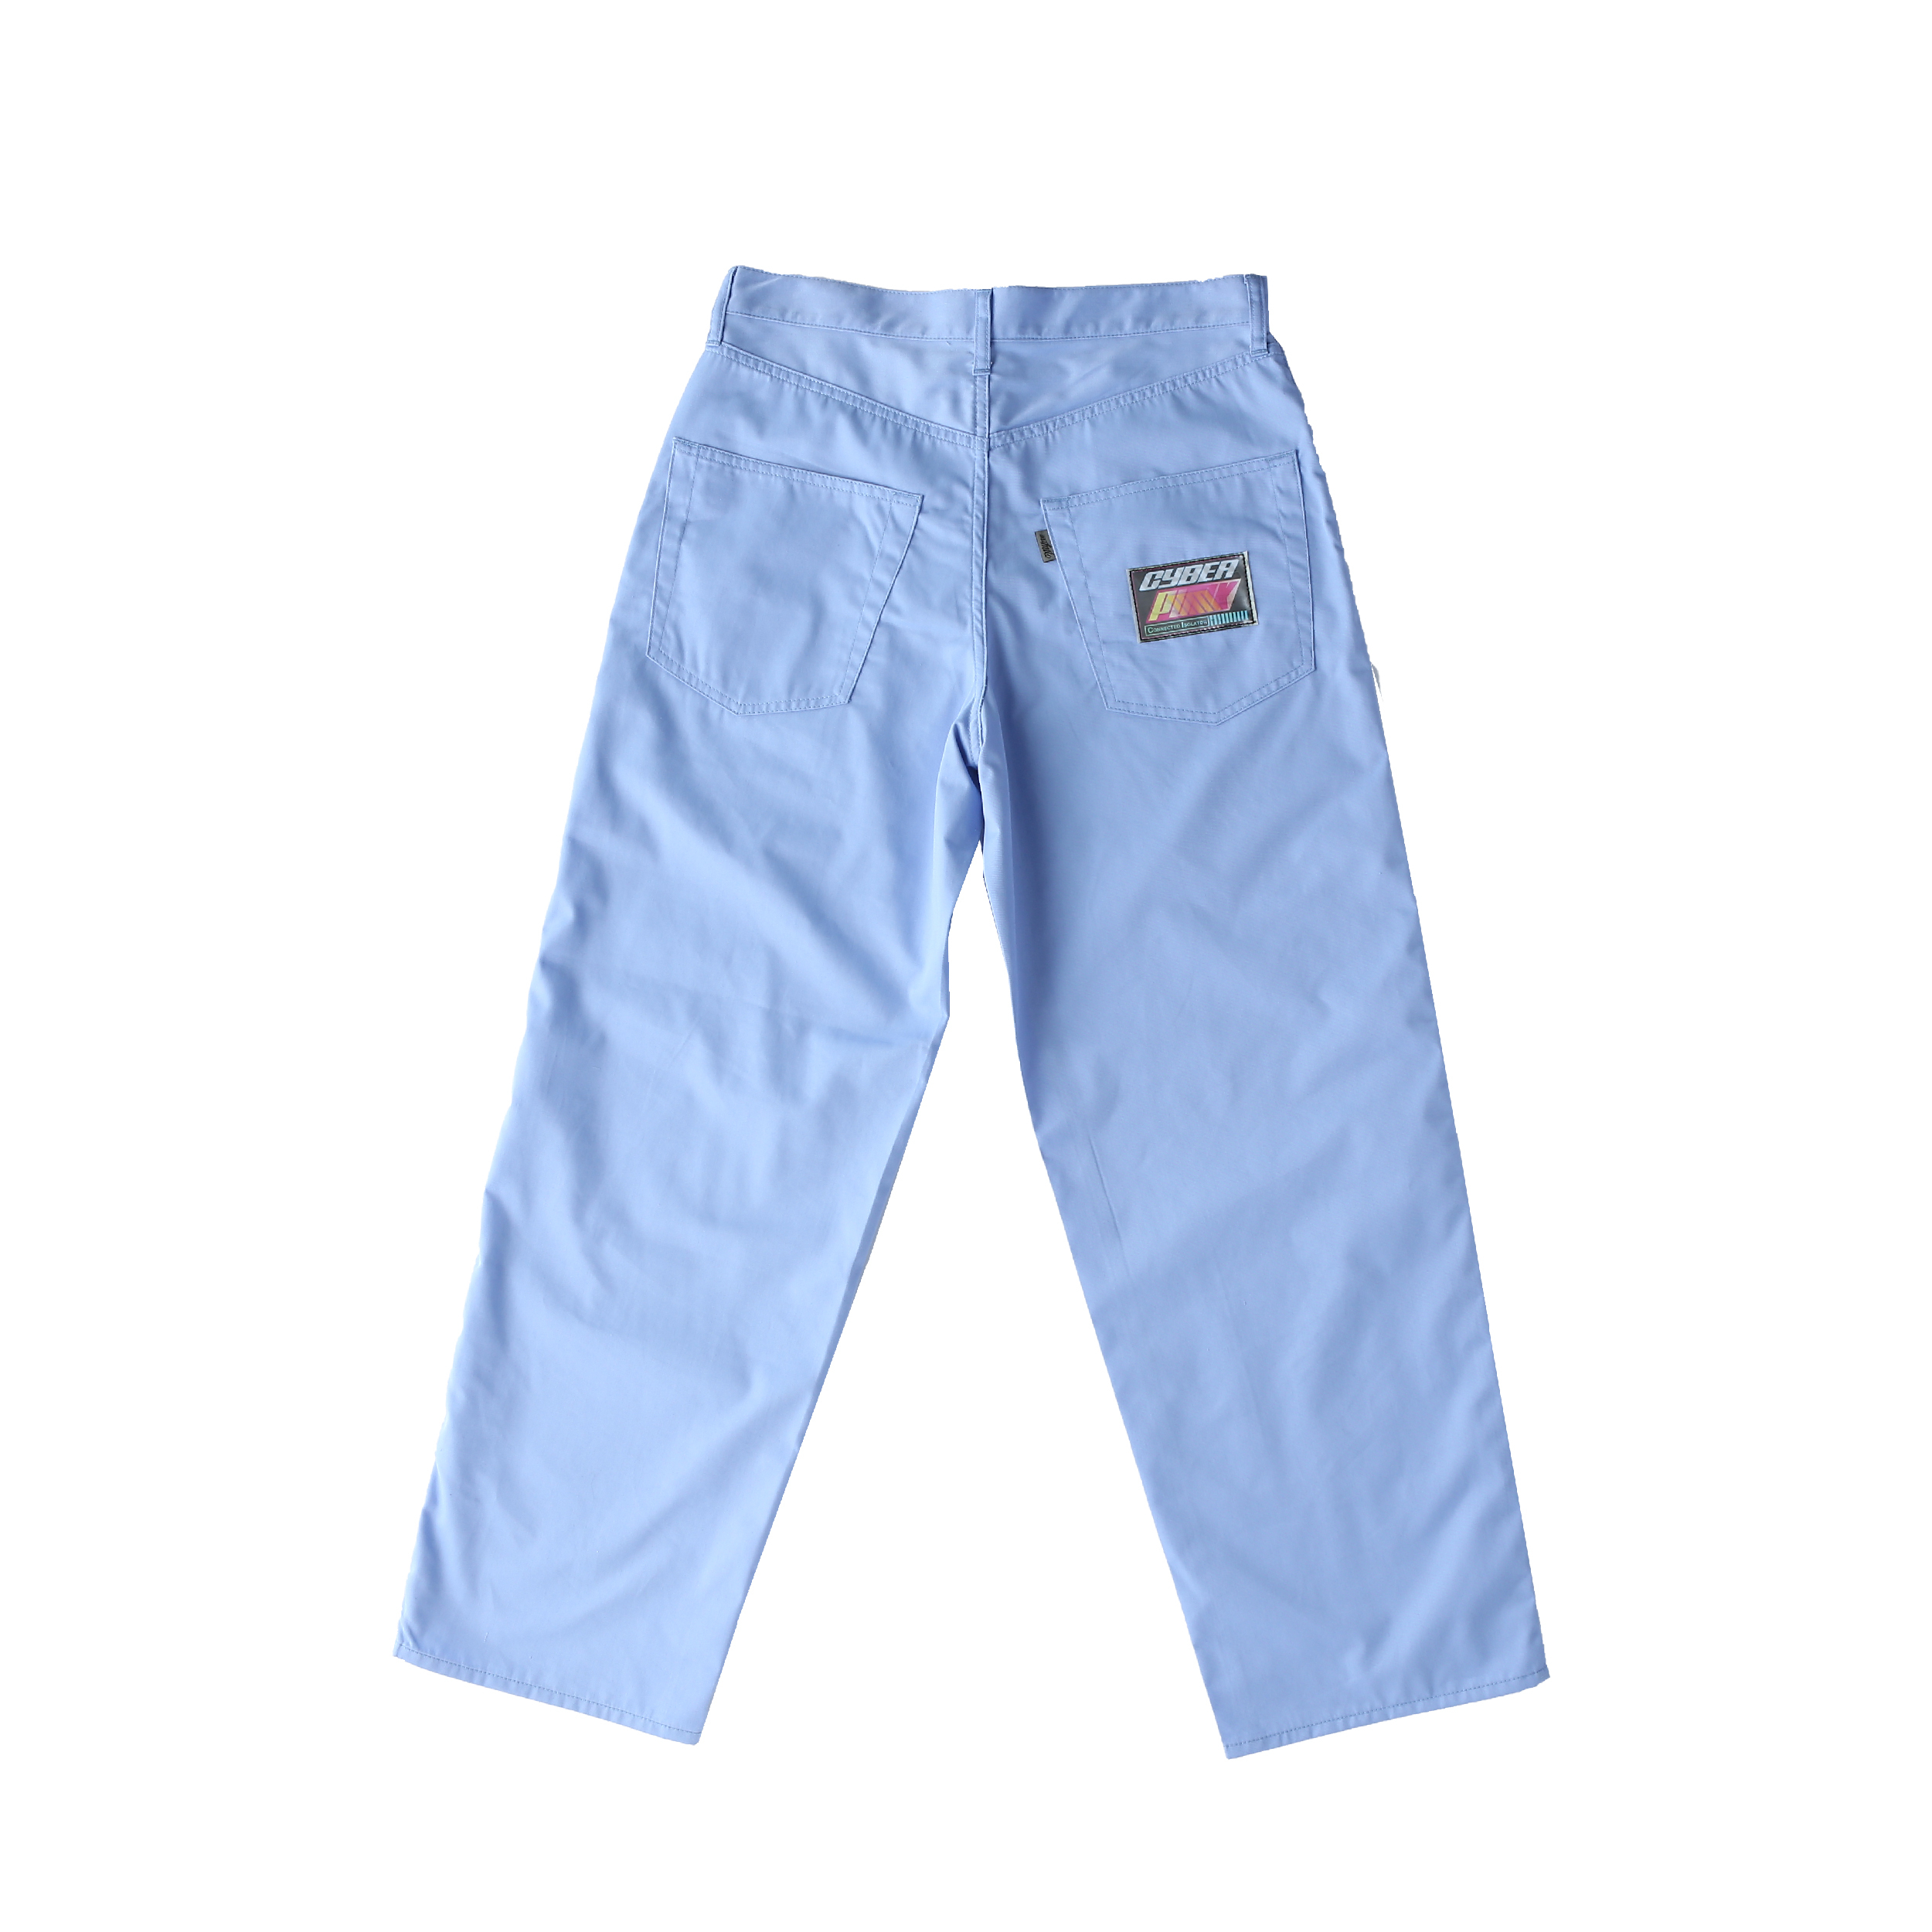 Wappen baggy pants / BLUE - 画像2